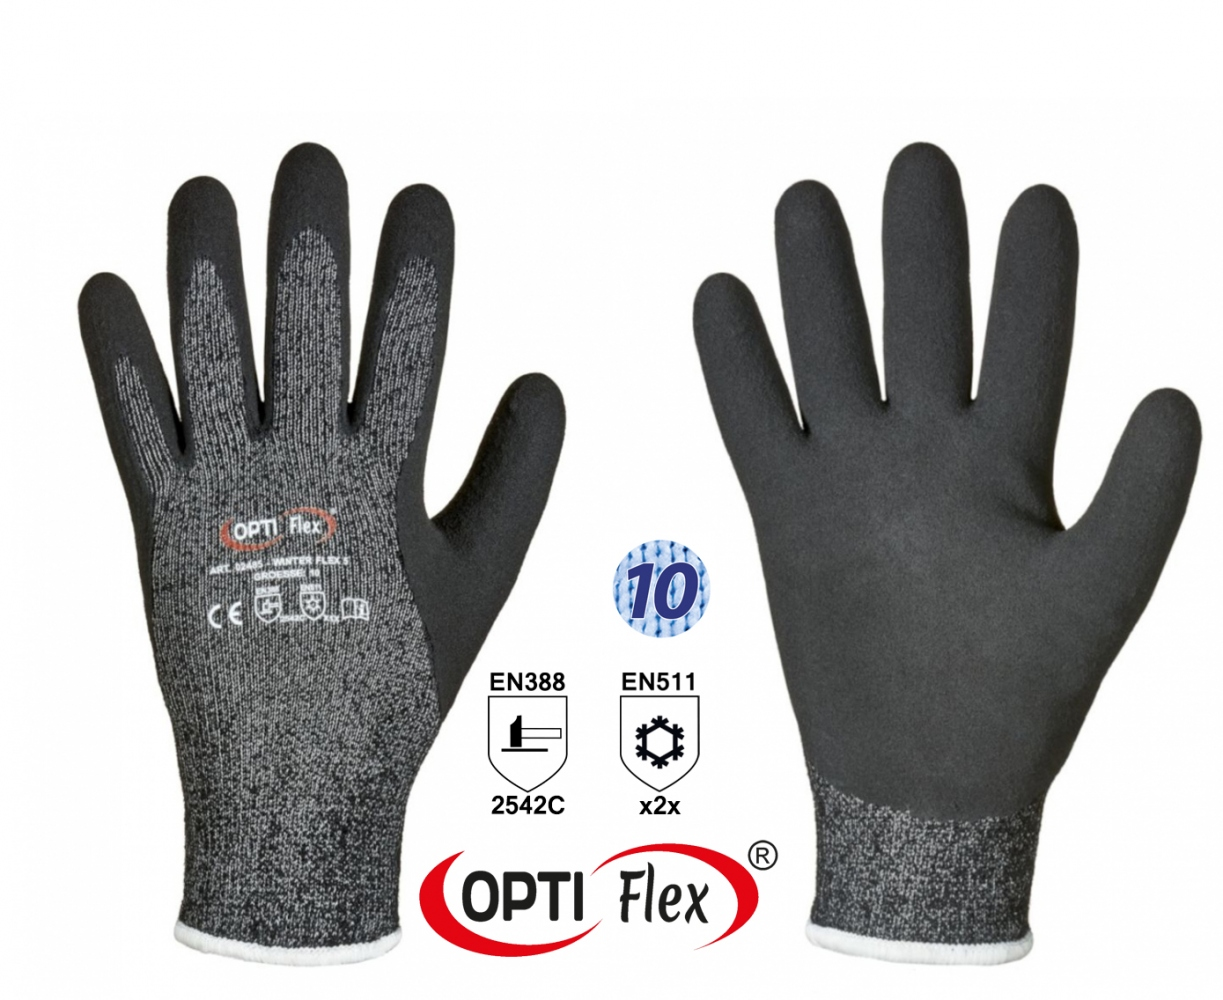 pics/Feldtmann 2016/Handschutz/optiflex-02485-winter-flex-5-premium-cut-resistant-gloves.jpg